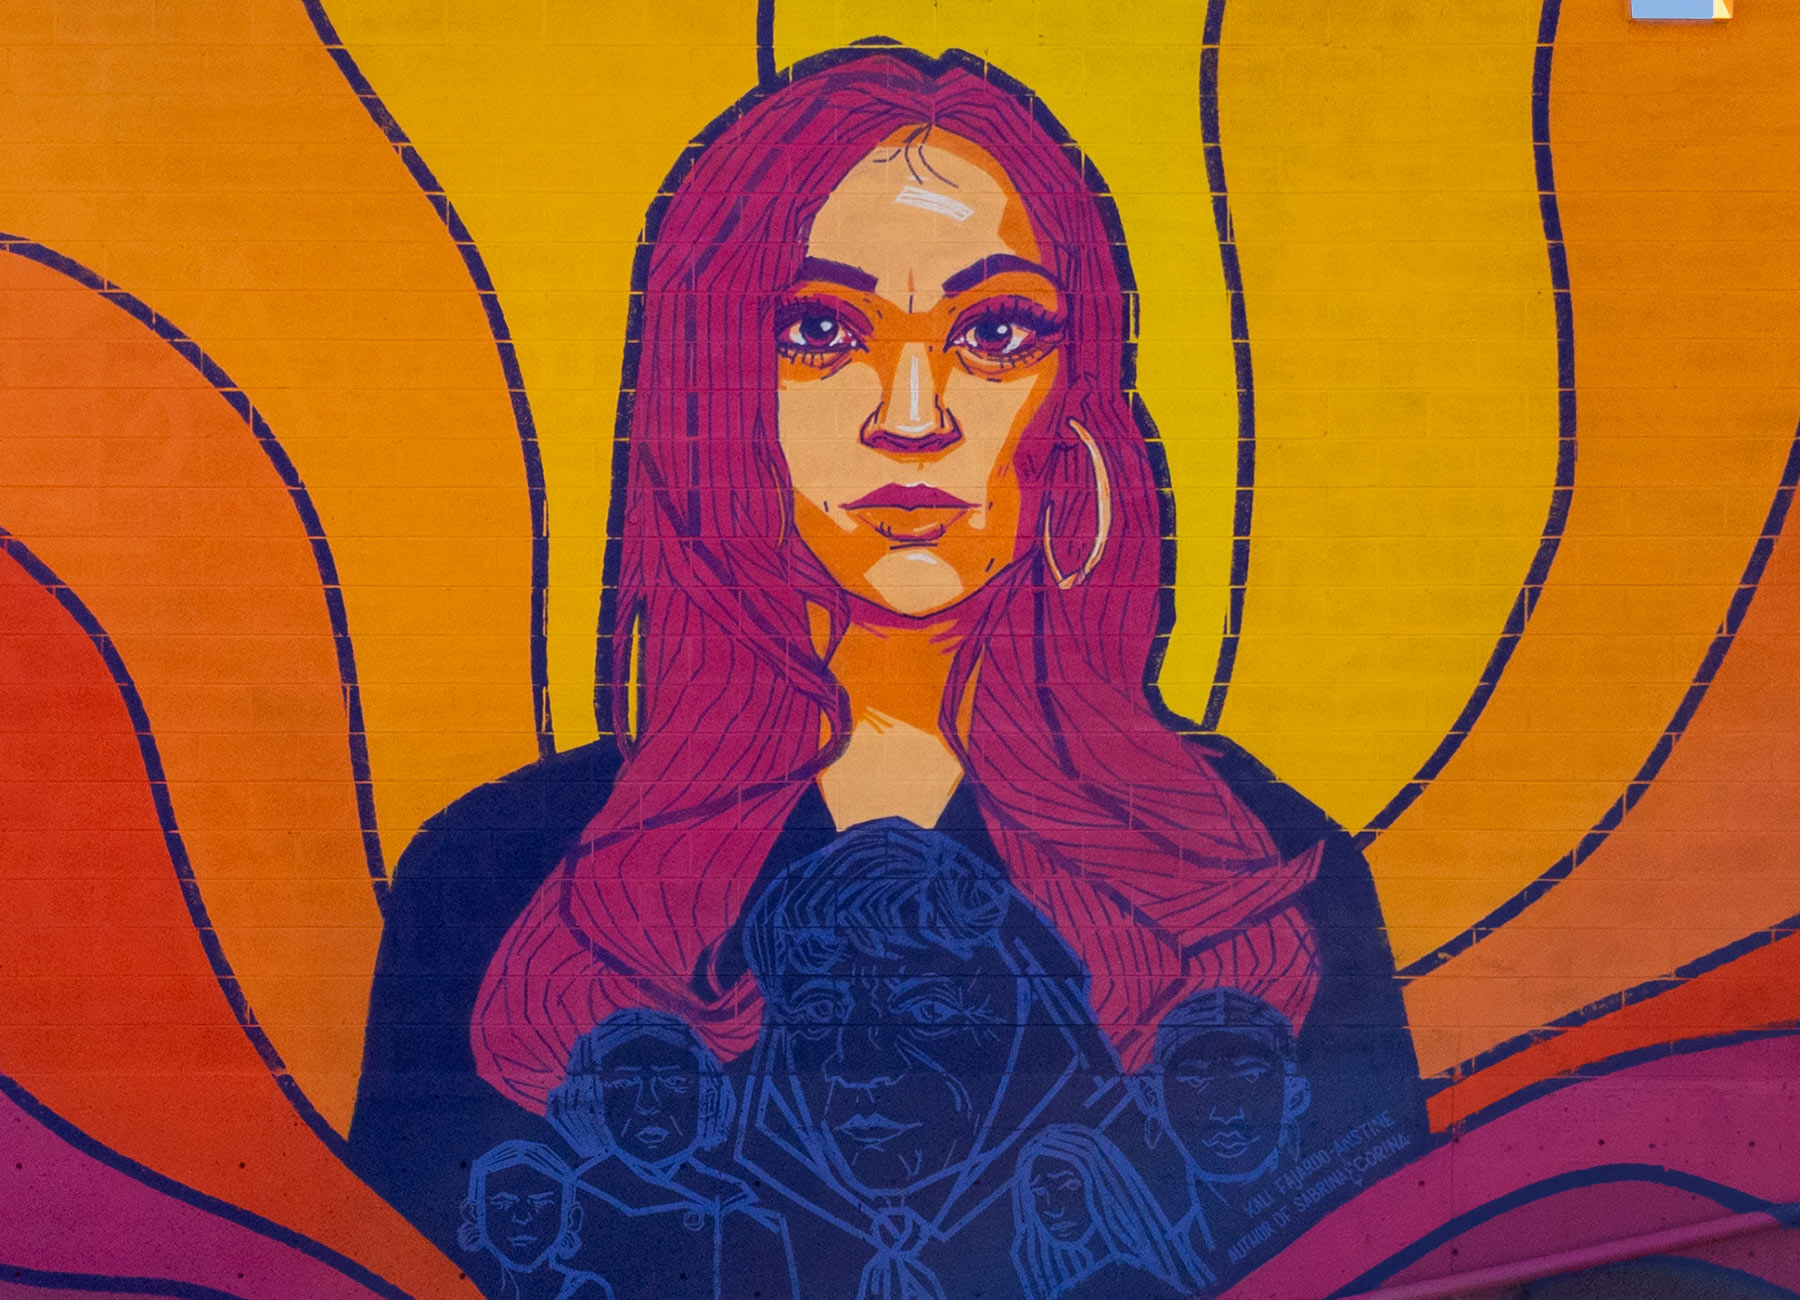 A mural that consists of a portrait of Kali Fajardo-Anstine in a painted stylized illustration with yellow, orange and purple abstract sun rays behind her.